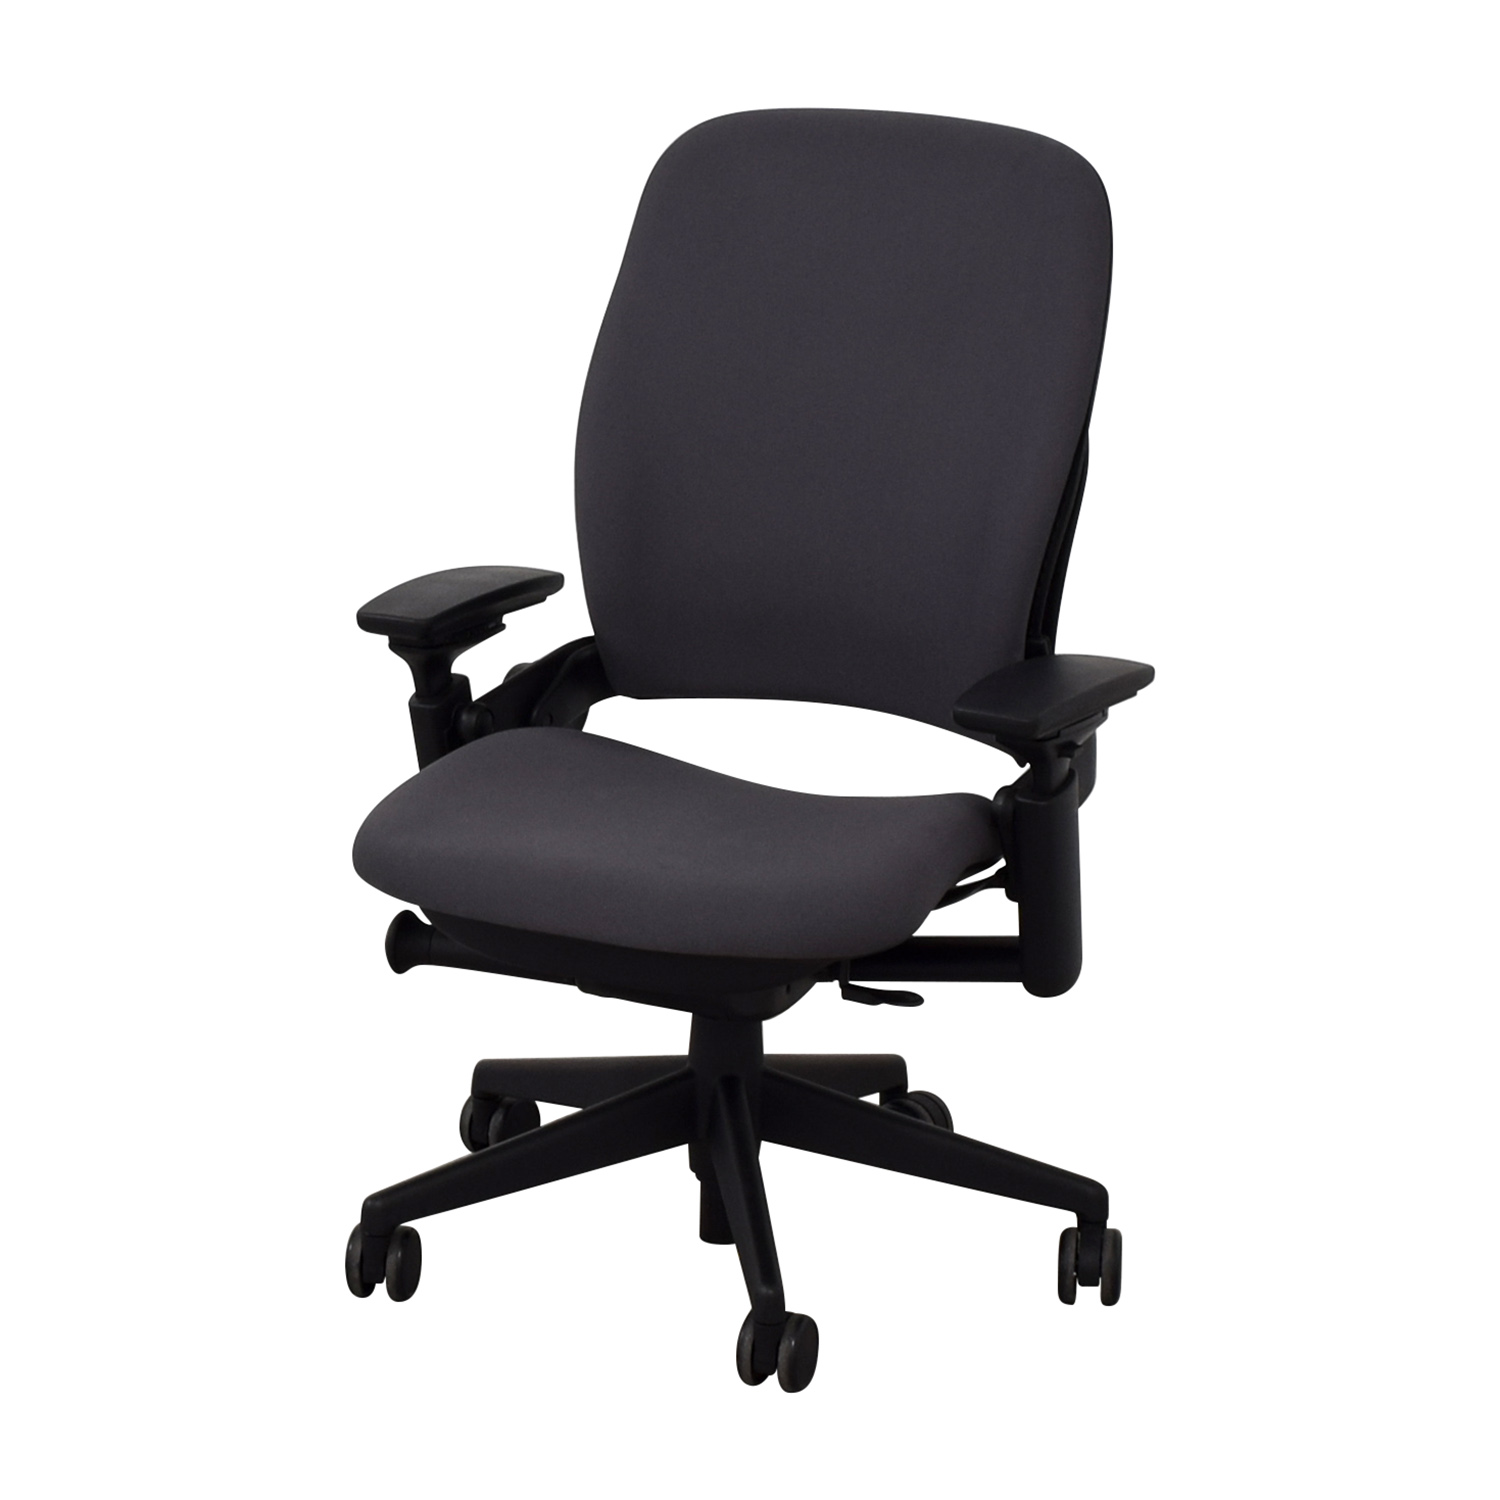 Steelcase Steelcase Leap V2 Office Chair Chairs